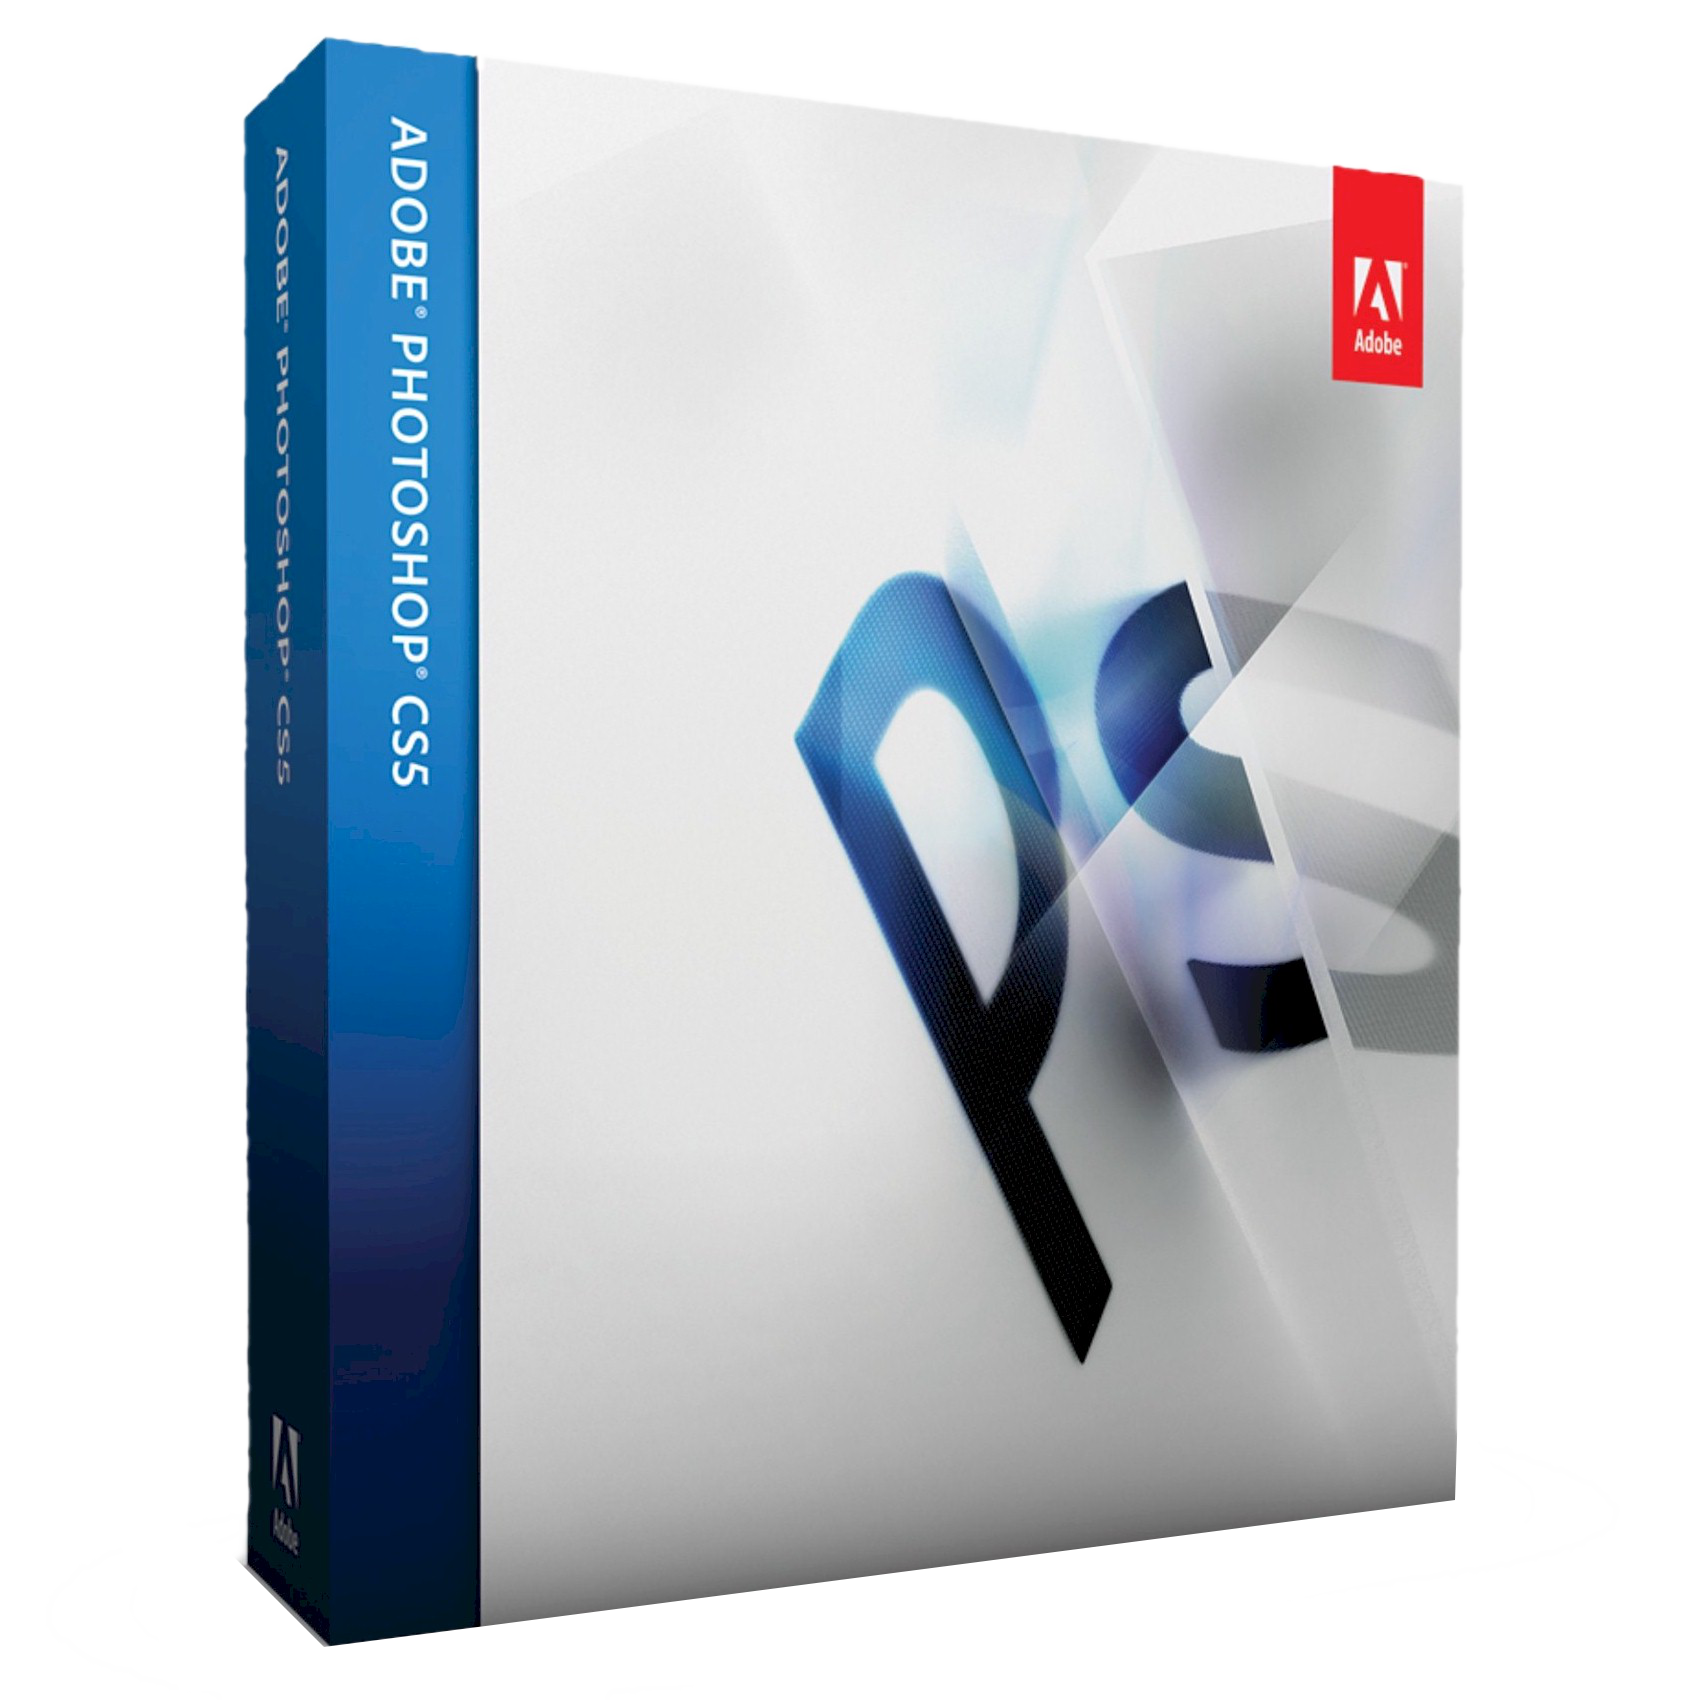 Adobe Photoshop Cs5 Extendet Crack New!! Release!!!